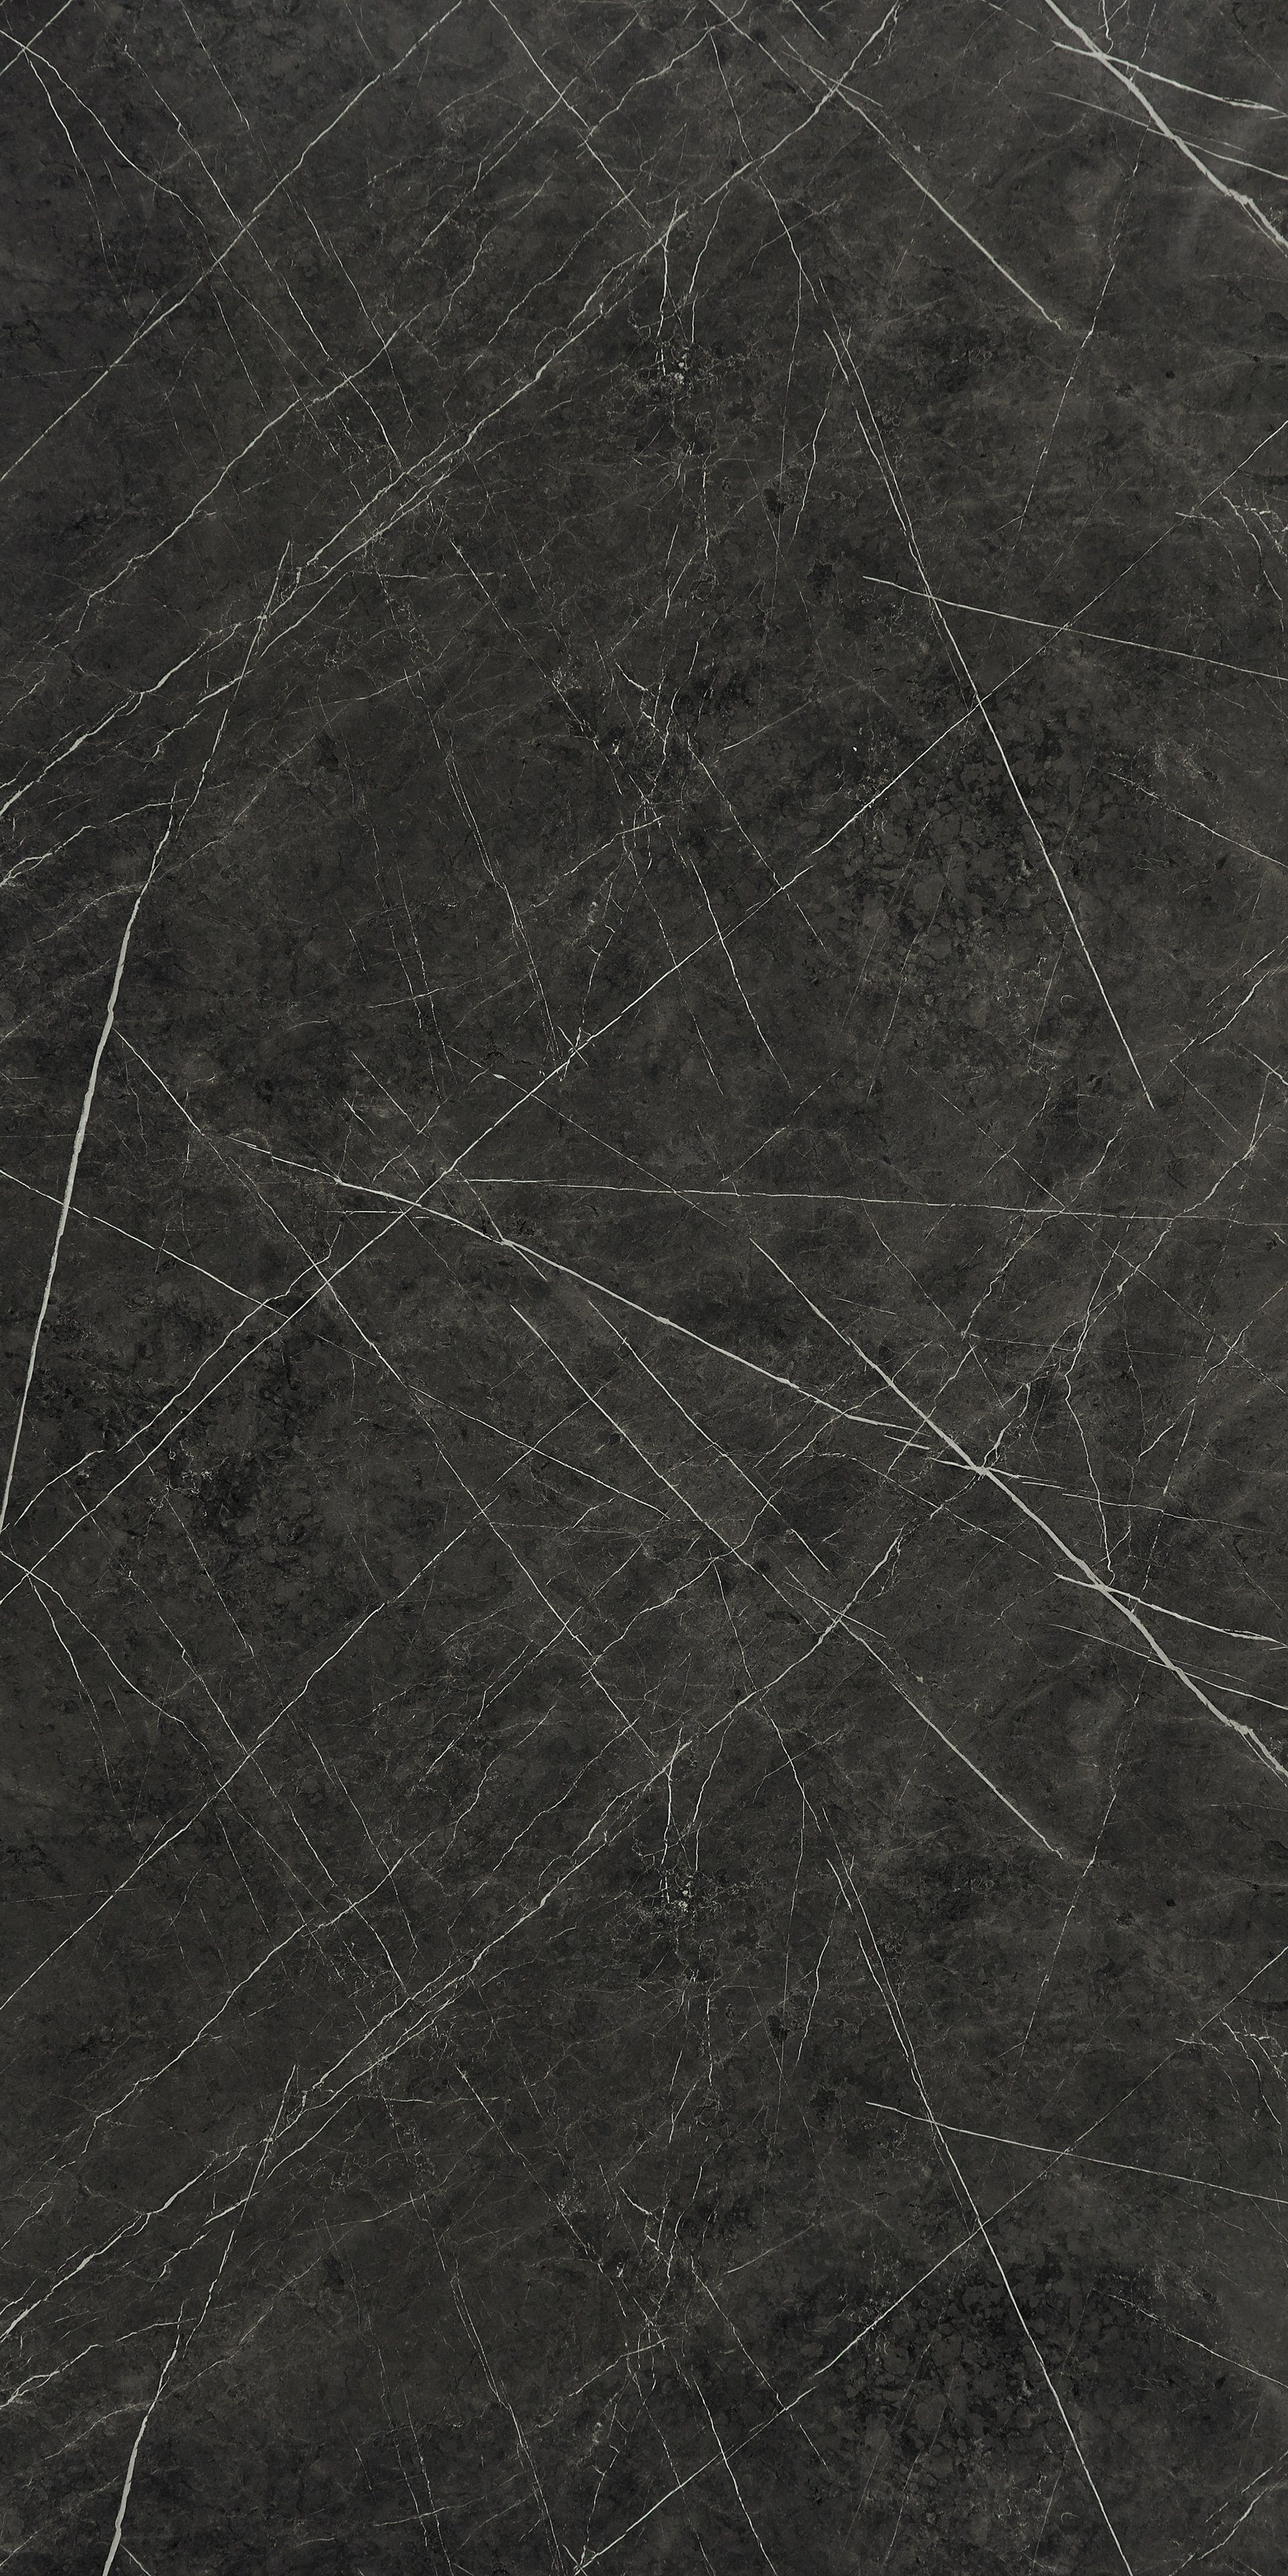 Black Marble Texture Seamless : black, marble, texture, seamless, 富美家®180fx™, 石墨, Texture,, Tiles, Material, Textures